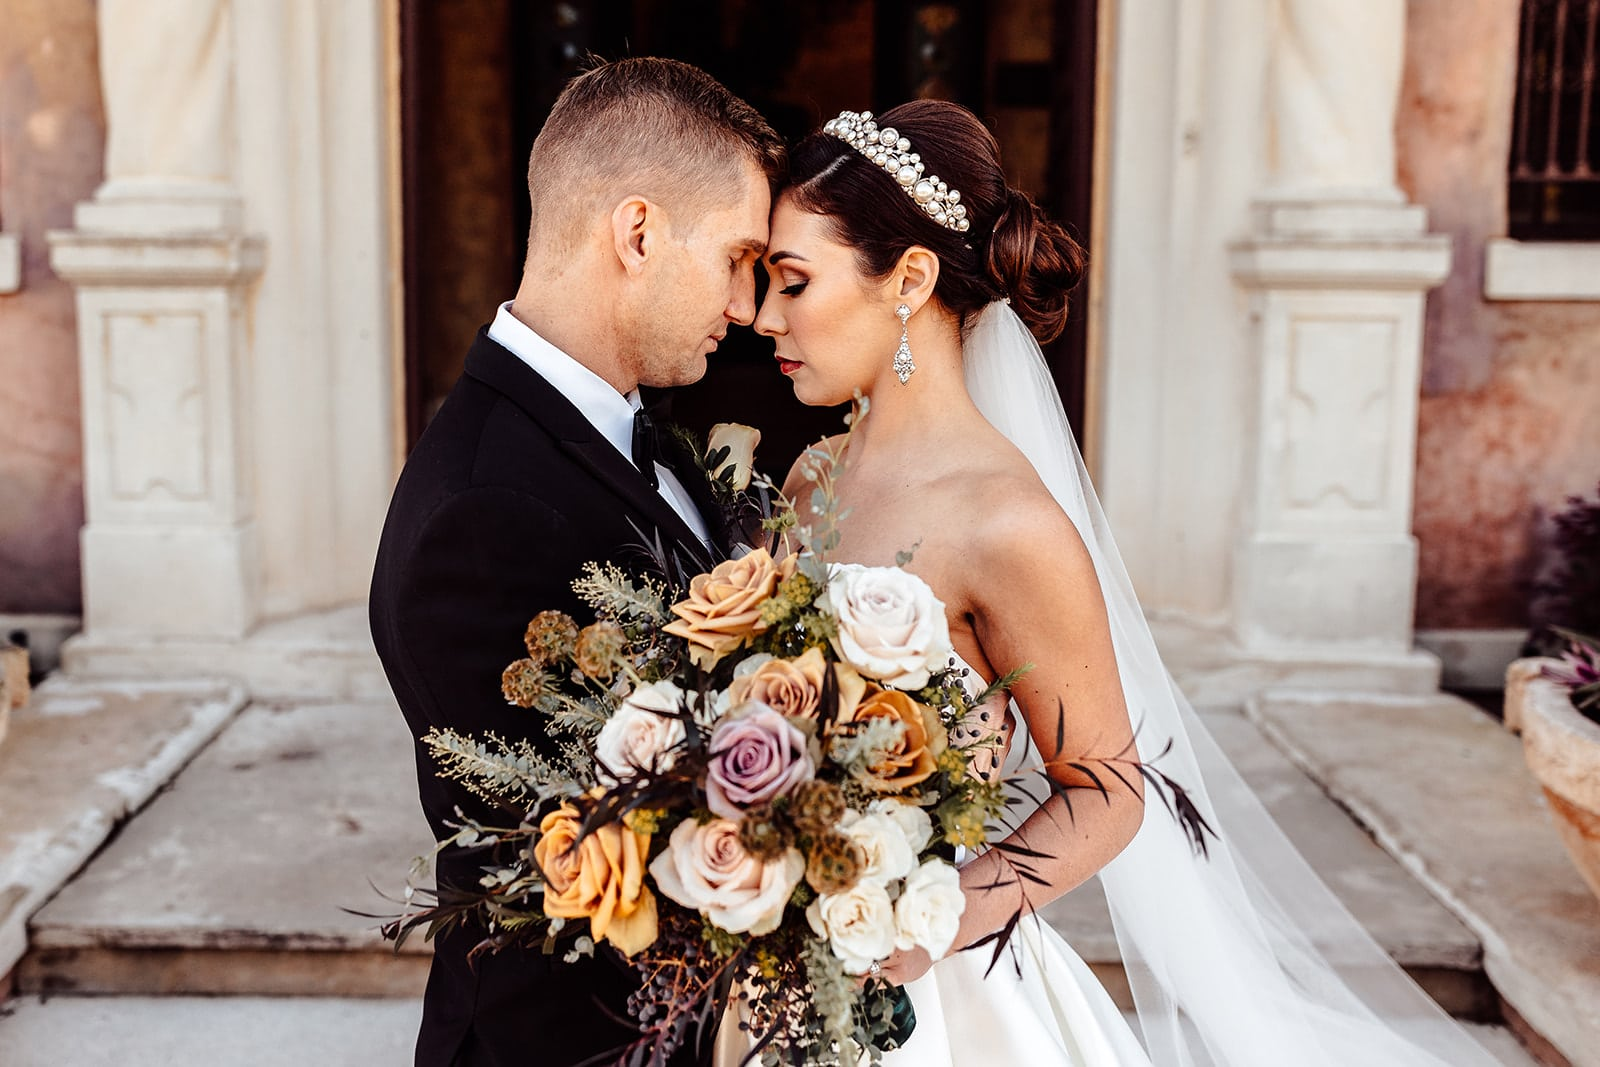 wedding portrait of bride and groom touching forheads and noses while bride holds bouquet in front of them